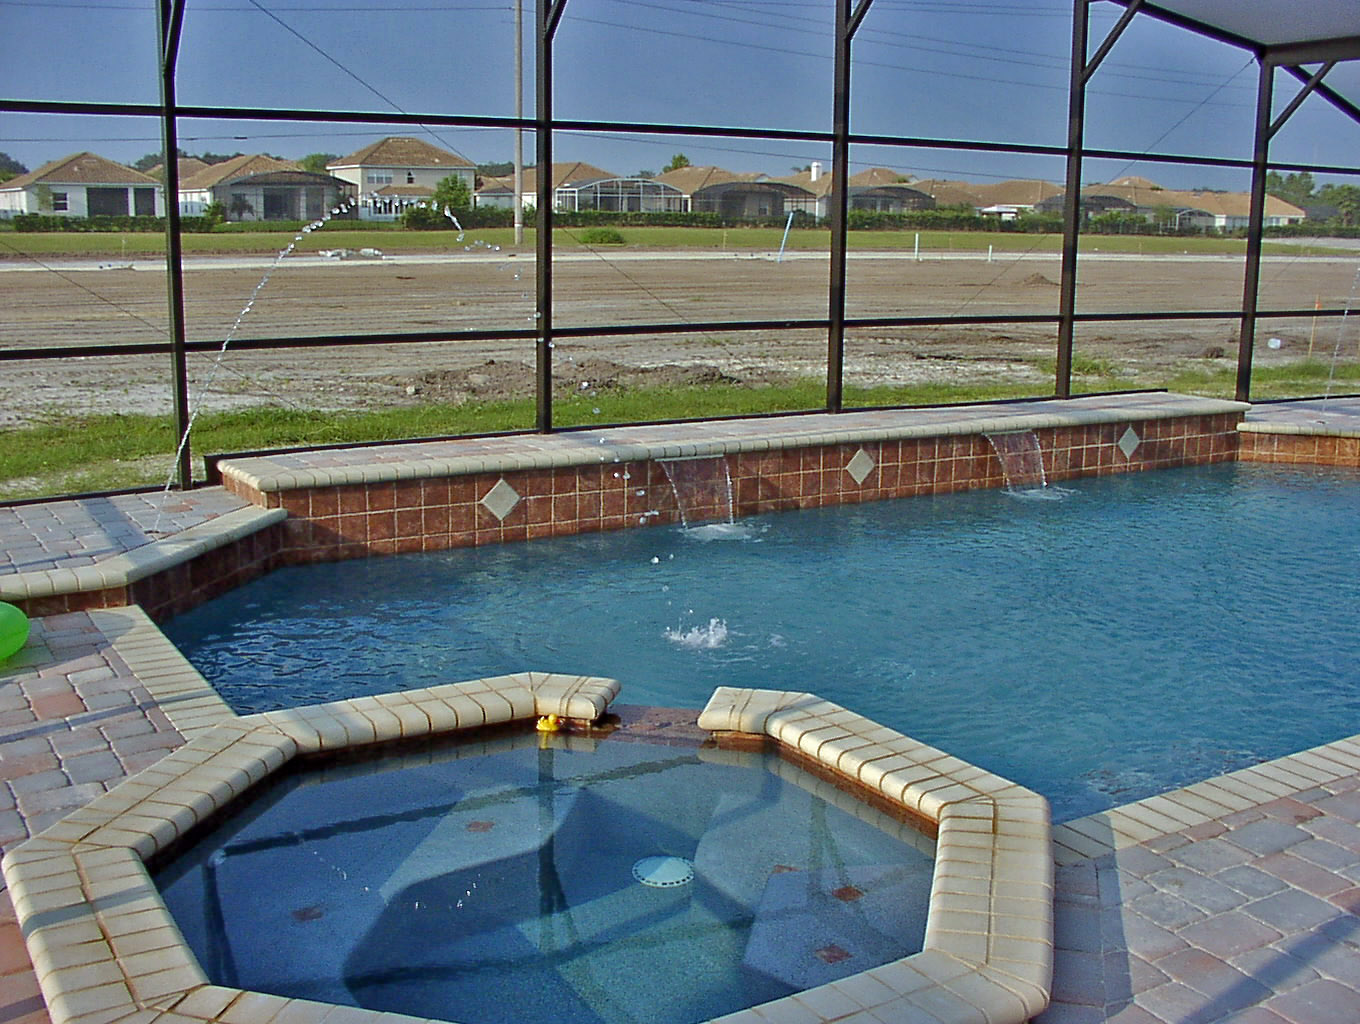 Concrete Pools Vs Fiberglass Pools Vs Vinyl Pools